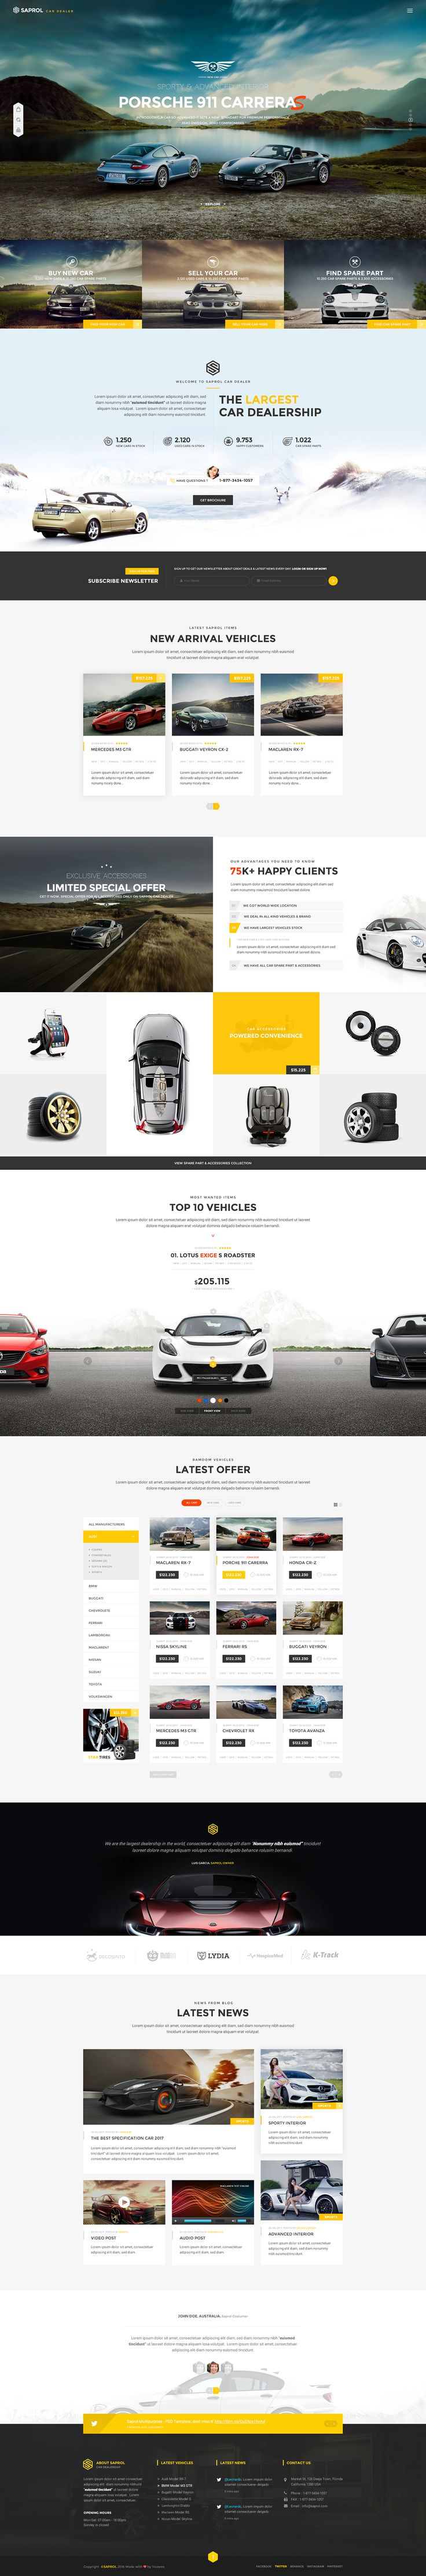 all pages : http://themeforest.net/item/saprol-multipurpose-psd-template/15432130?s_rank=1